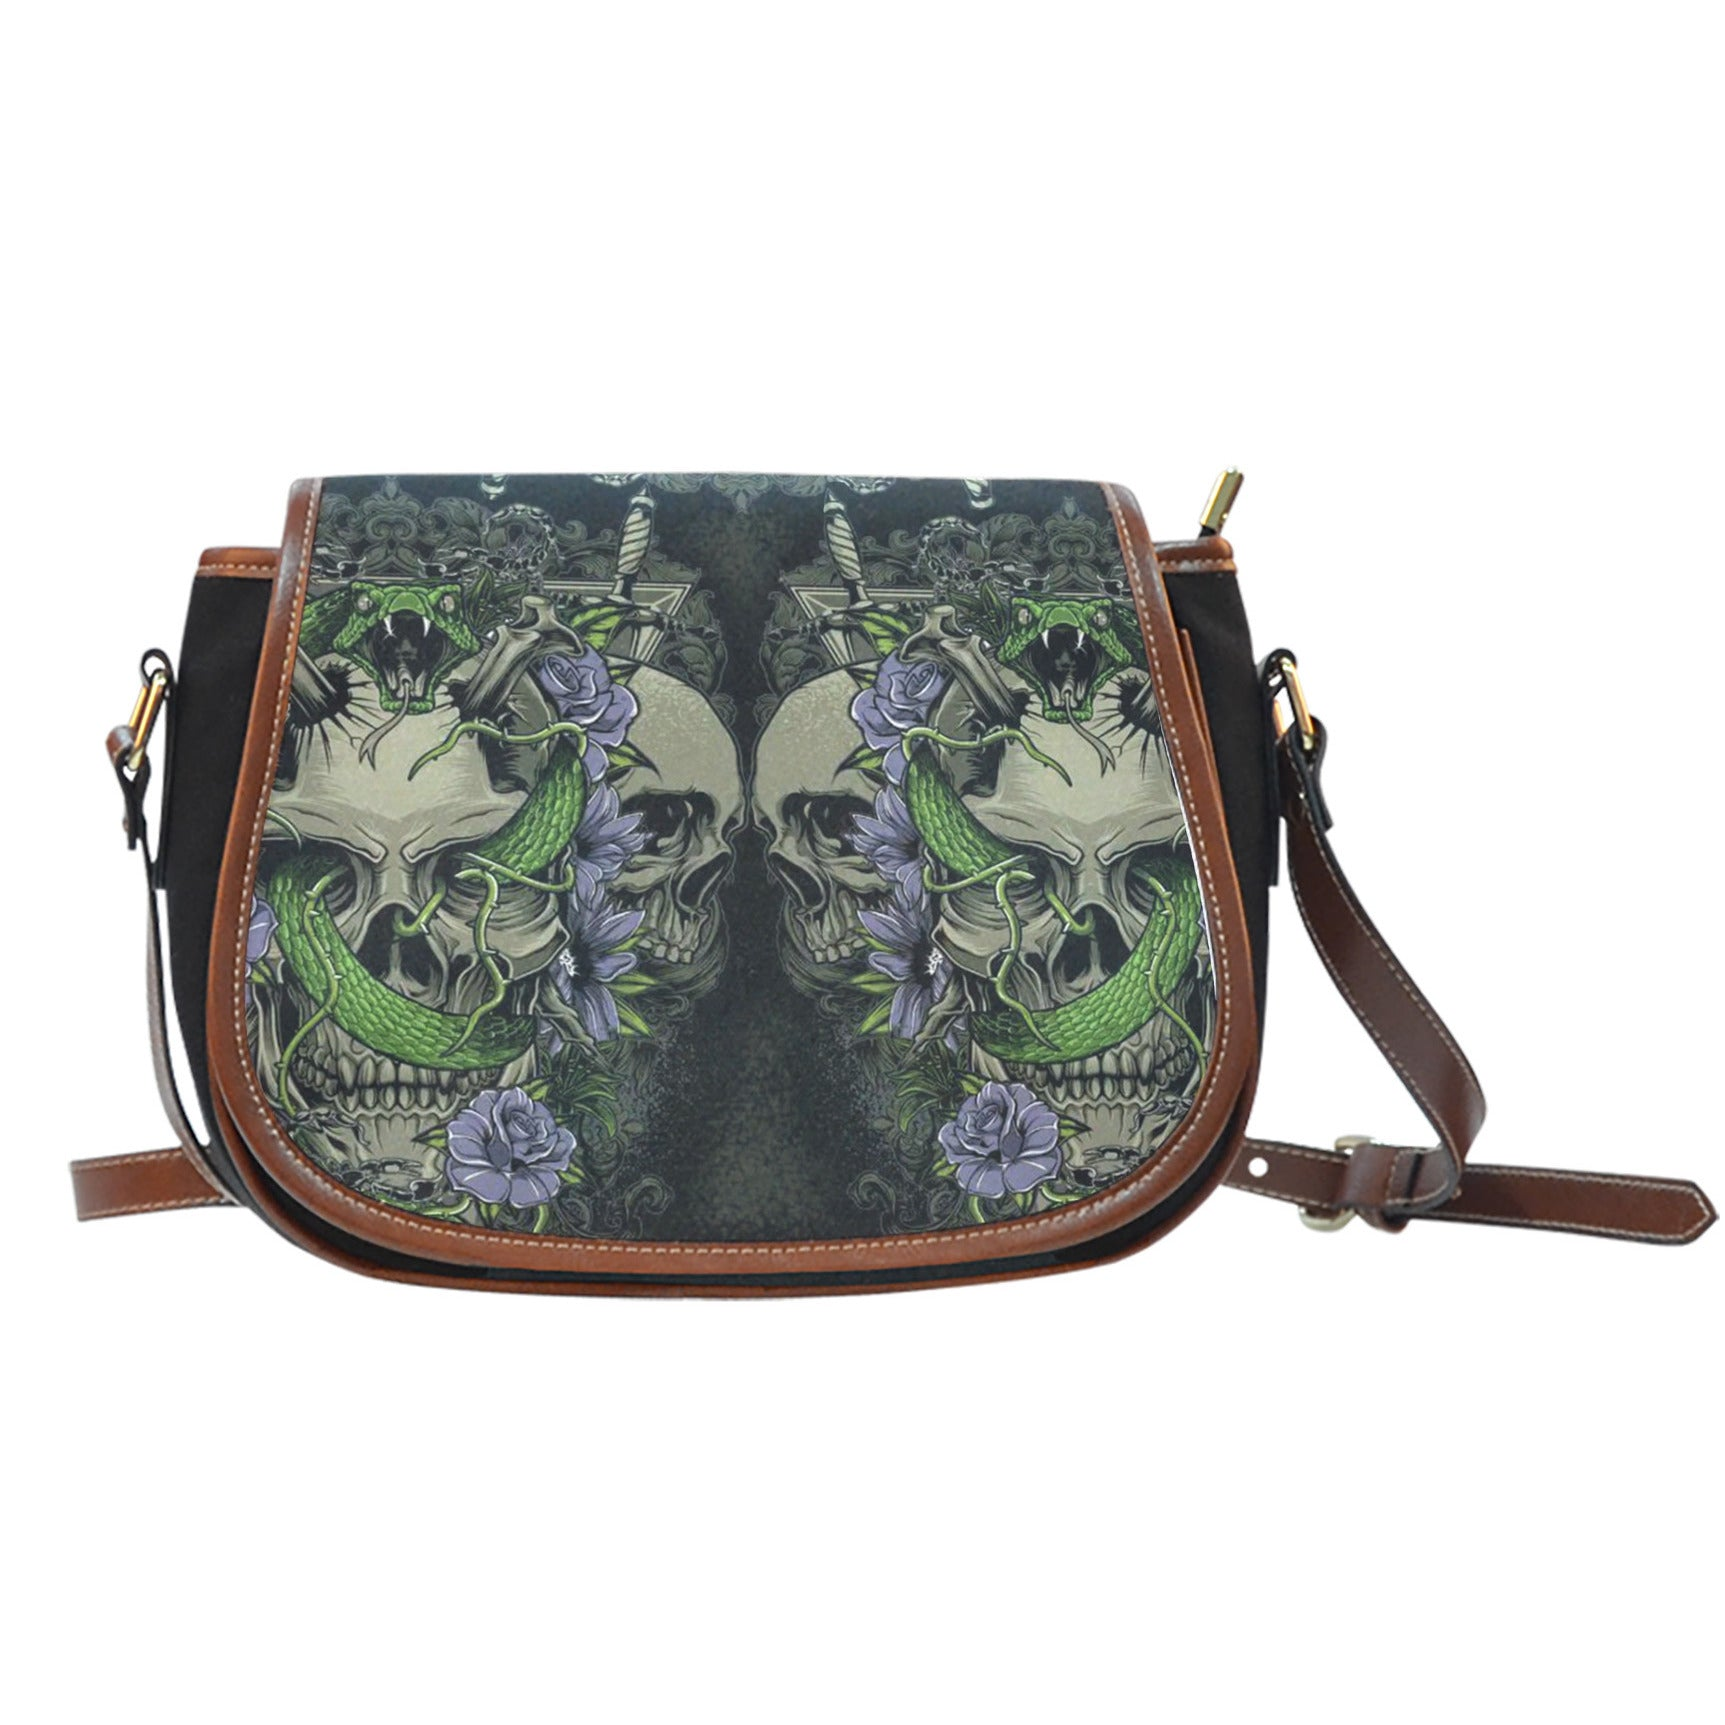 3D Skull Leather Cross-Body Carrying Strap Canvas Saddle Bags 004